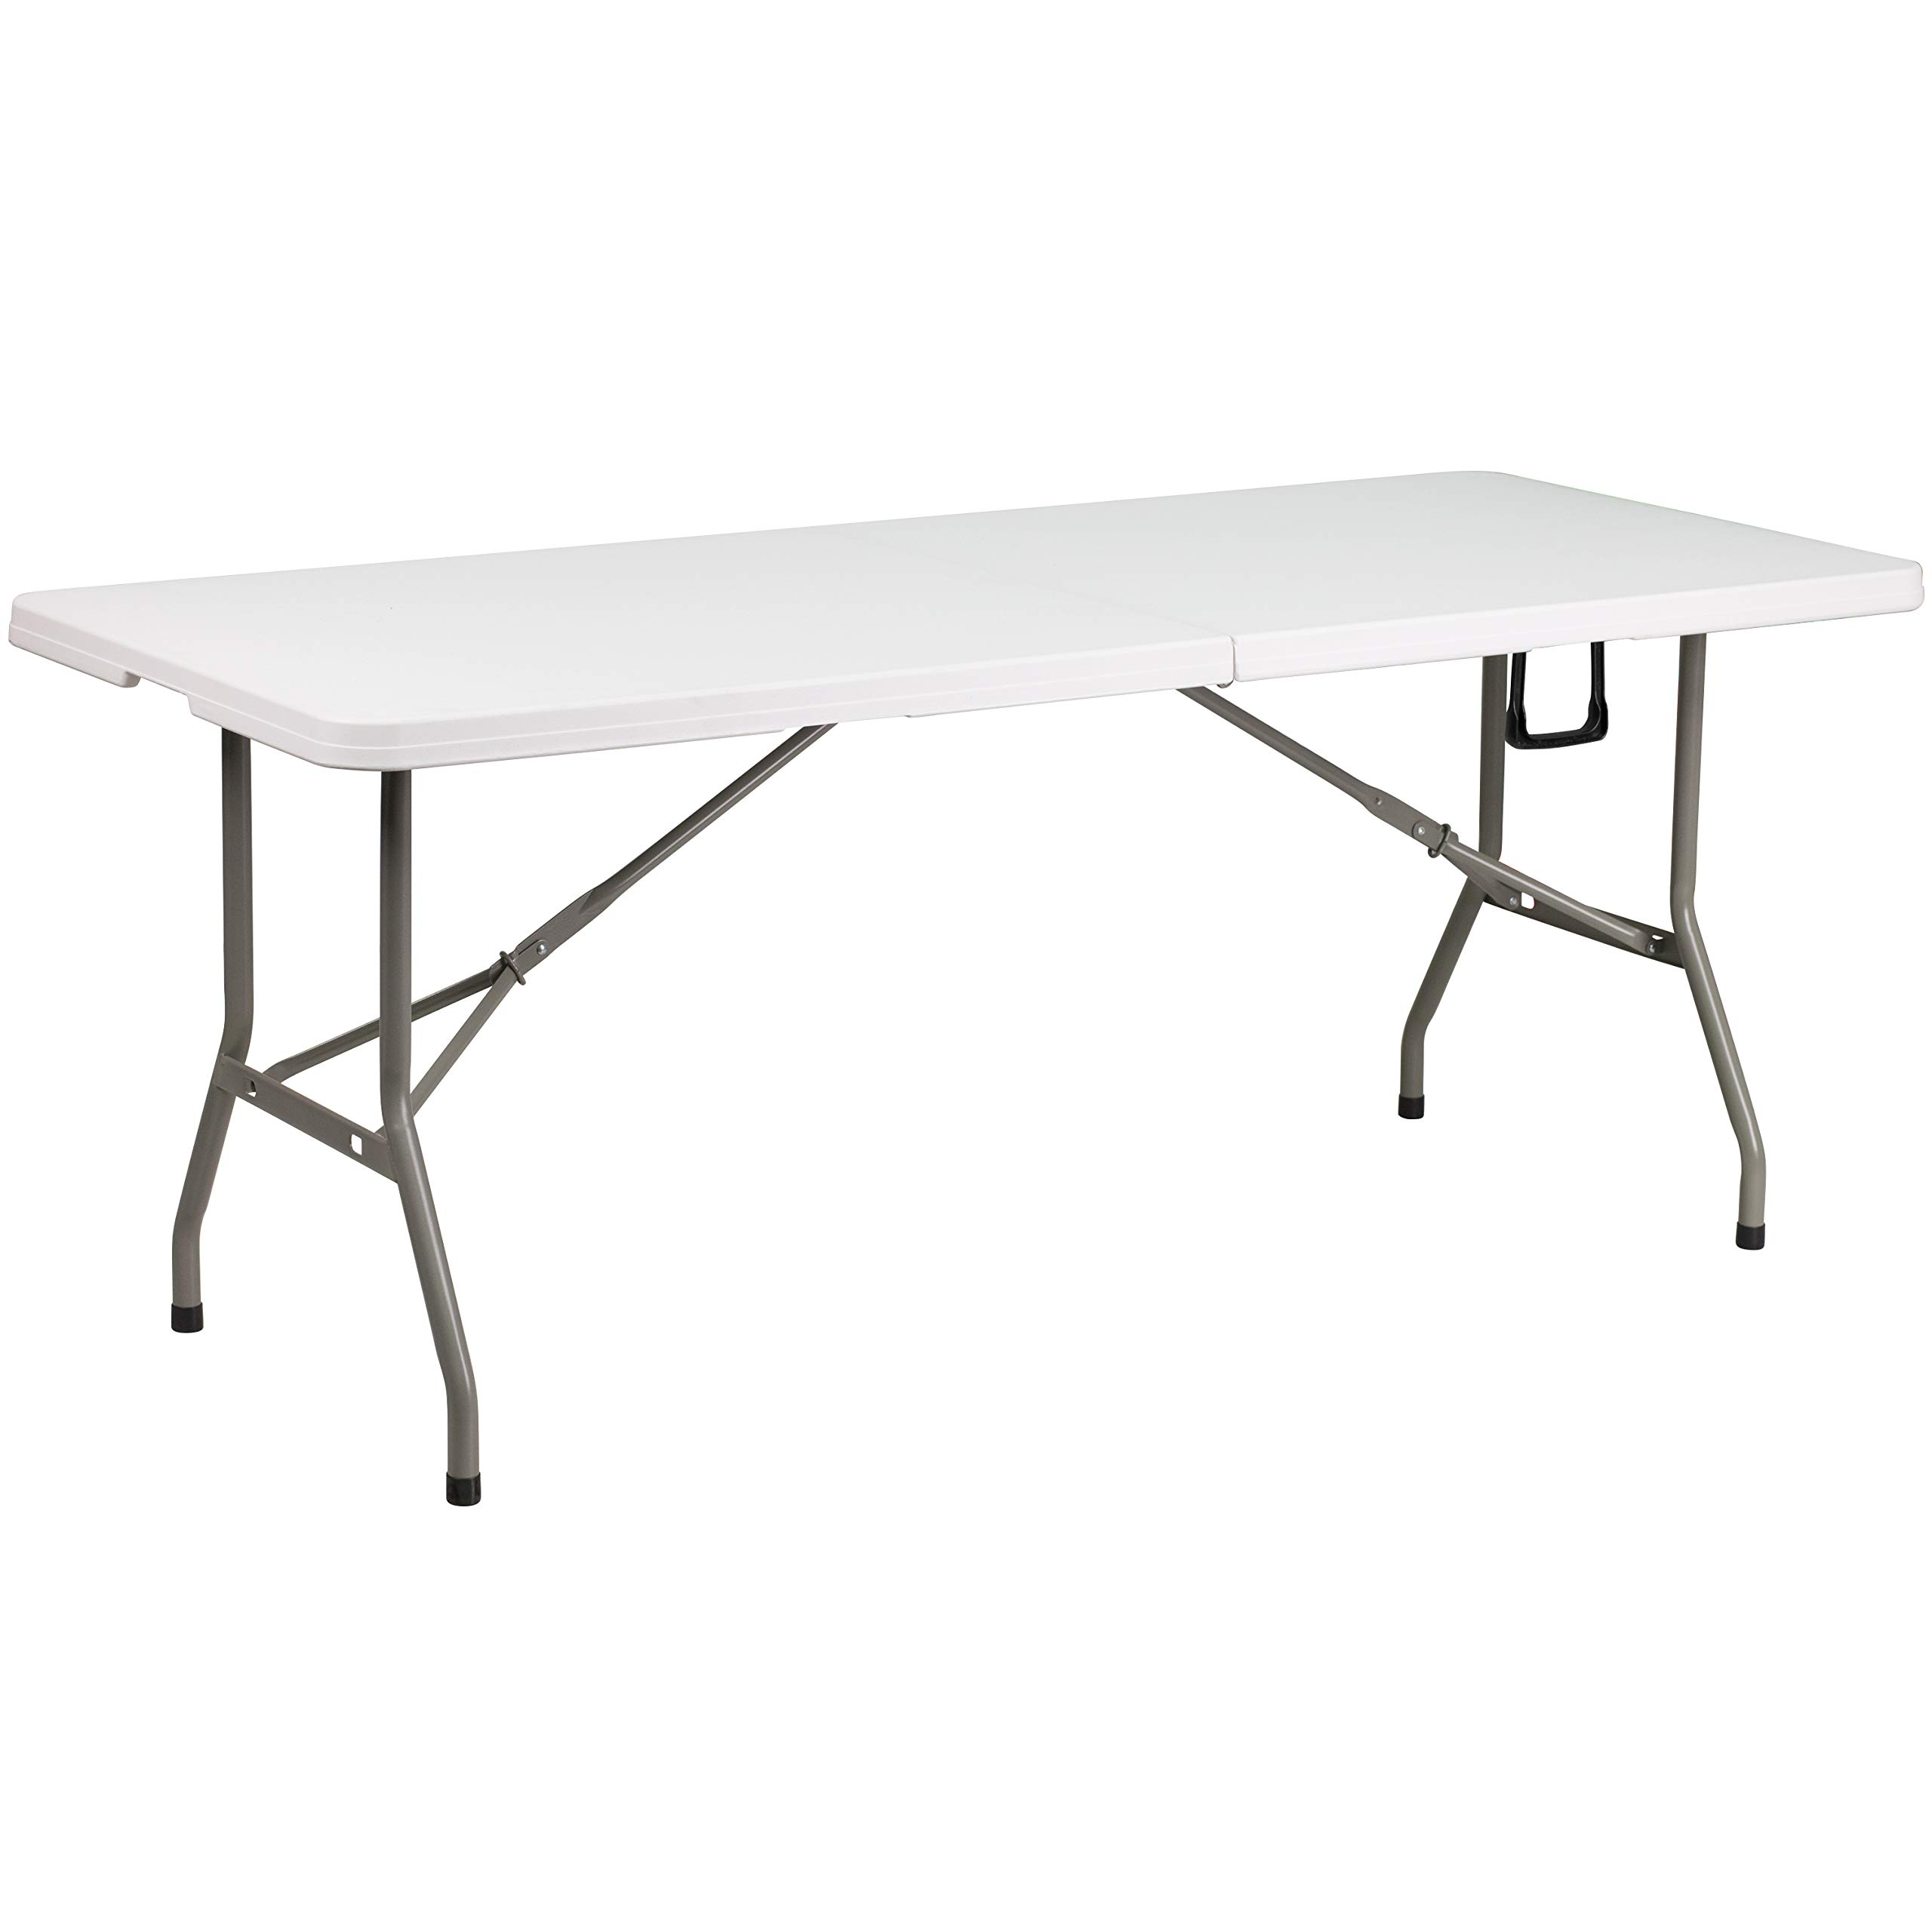 Flash Furniture 30''W x 72''L Bi-Fold Granite White Plastic Banquet and Event Folding Table with Carrying Handle by Flash Furniture